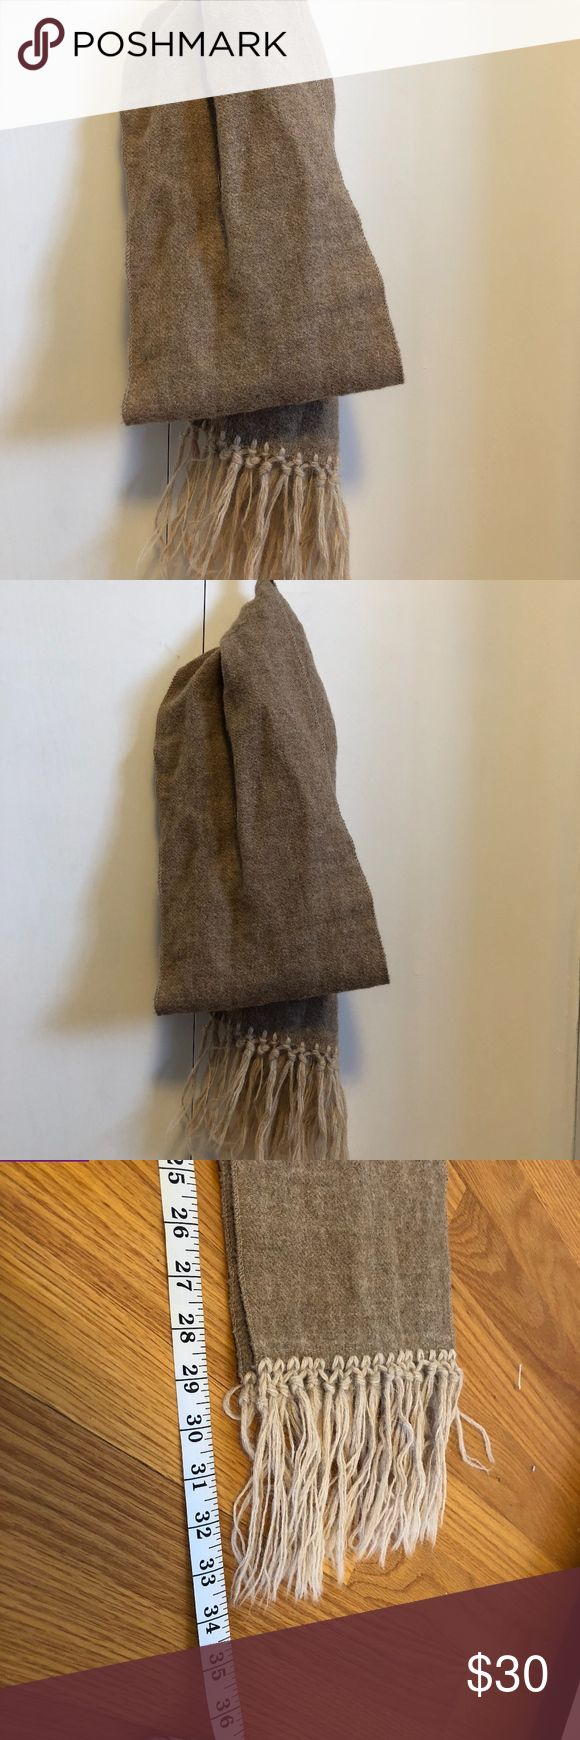 Vintage Alpaca Scarf Khaki alpaca scarf in very good vintage condition. Very warm, great for a work outfit. Length measurement is taken with scarf folded in half. Open to offers. Accessories Scarves & Wraps